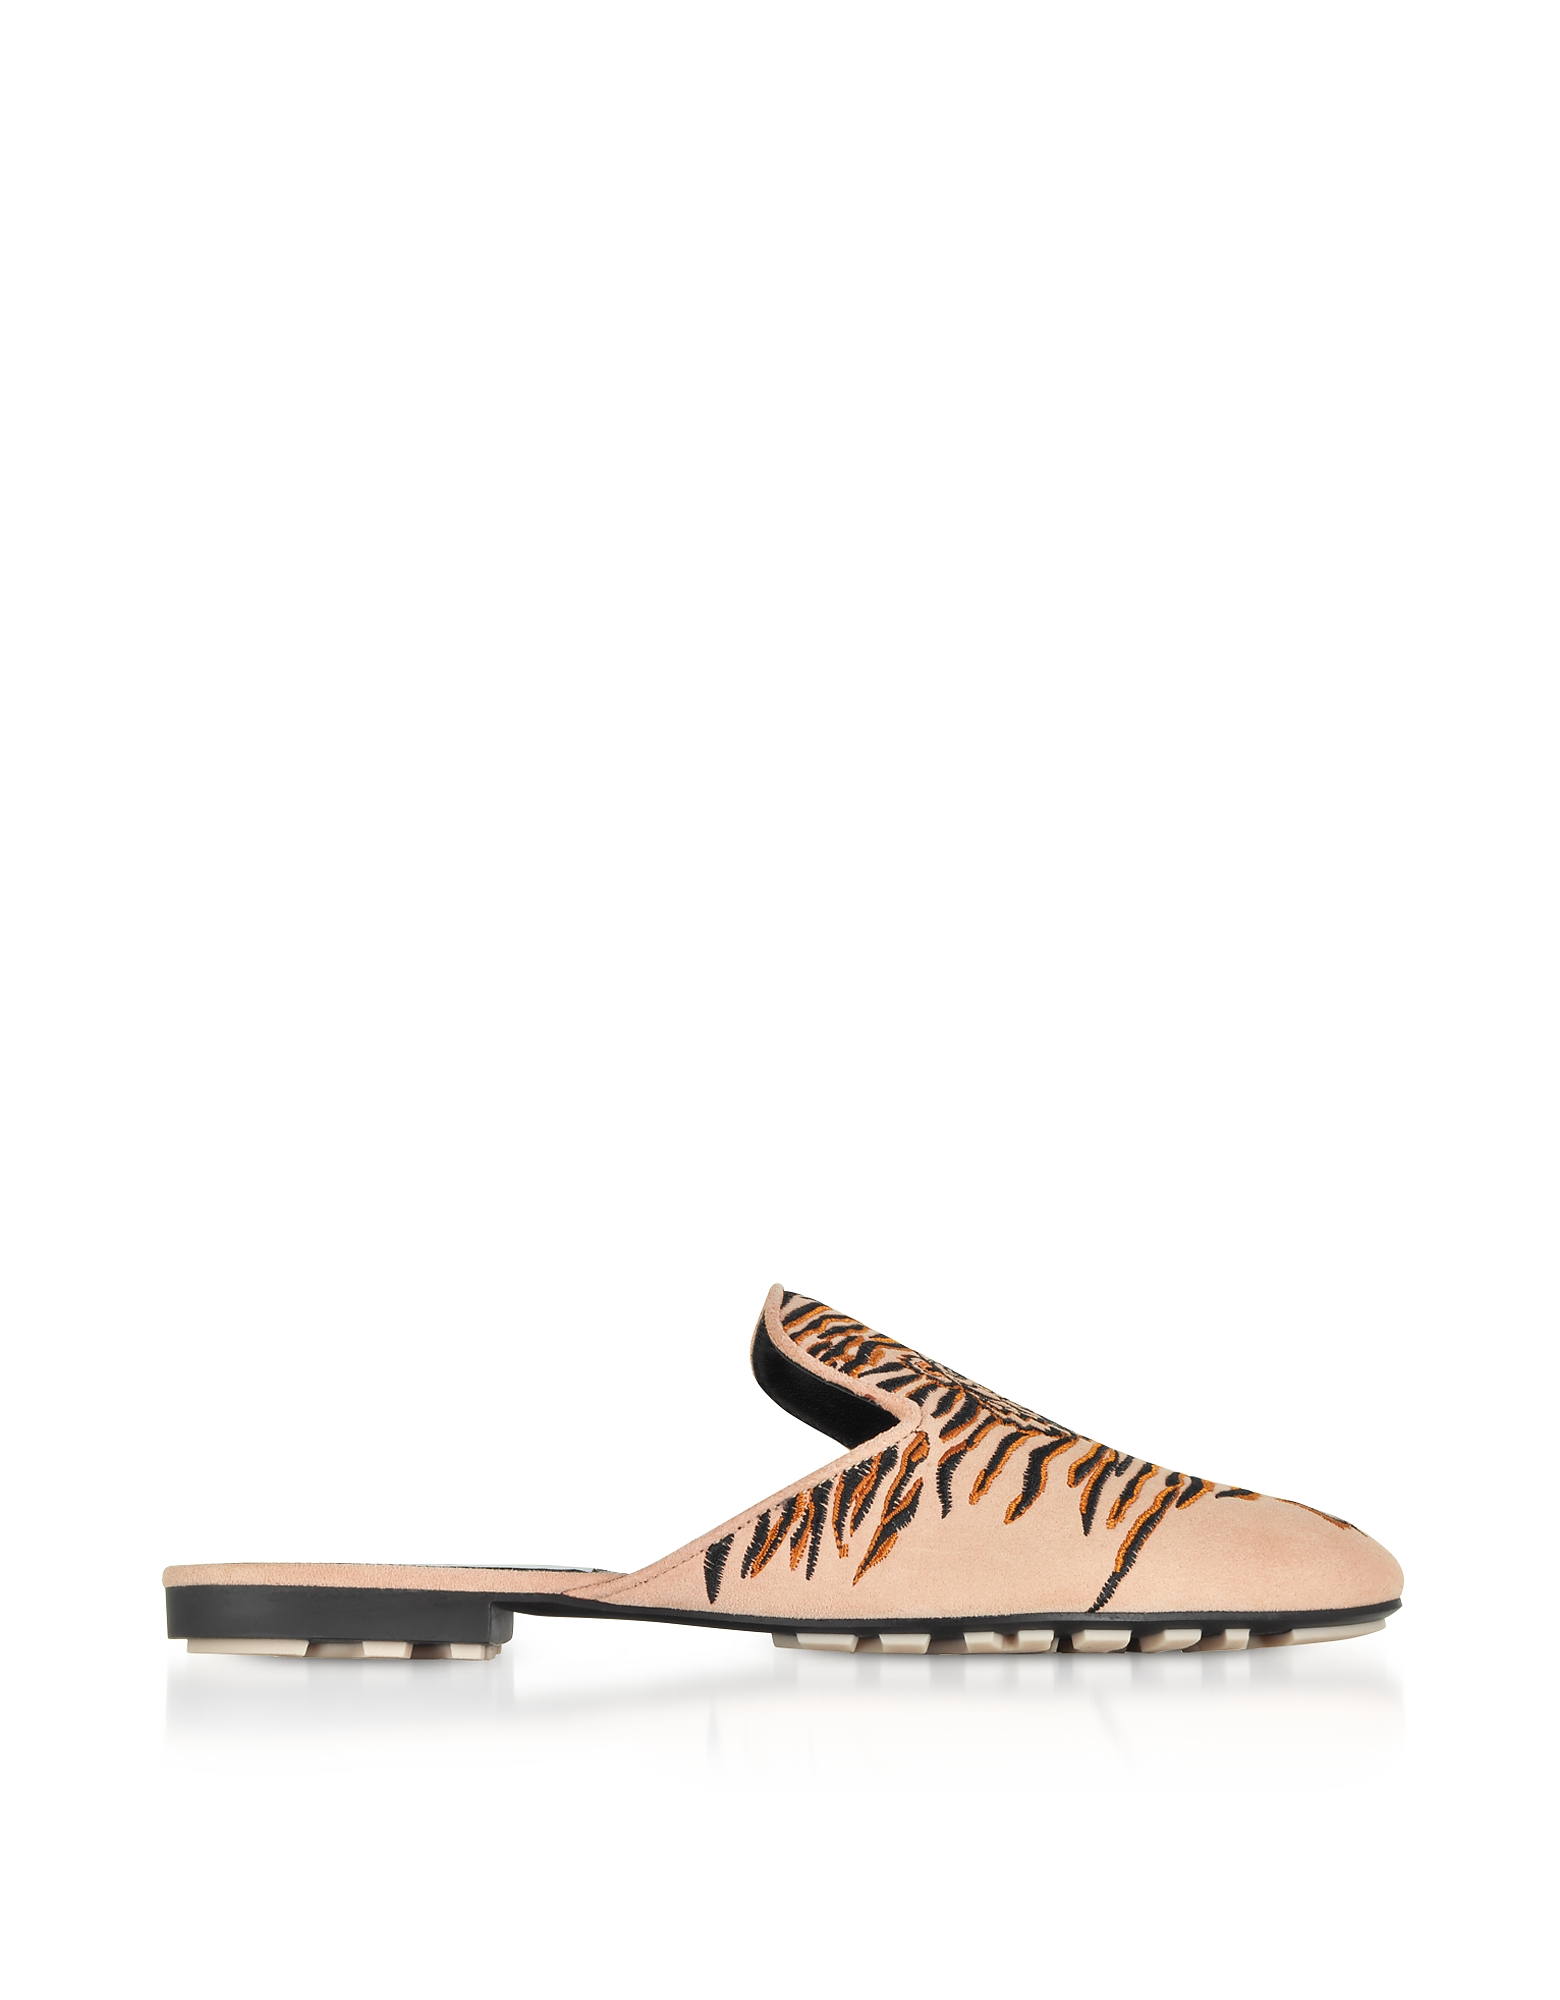 Kenzo Shoes, Nude Suede Geo Tiger Flat Mules